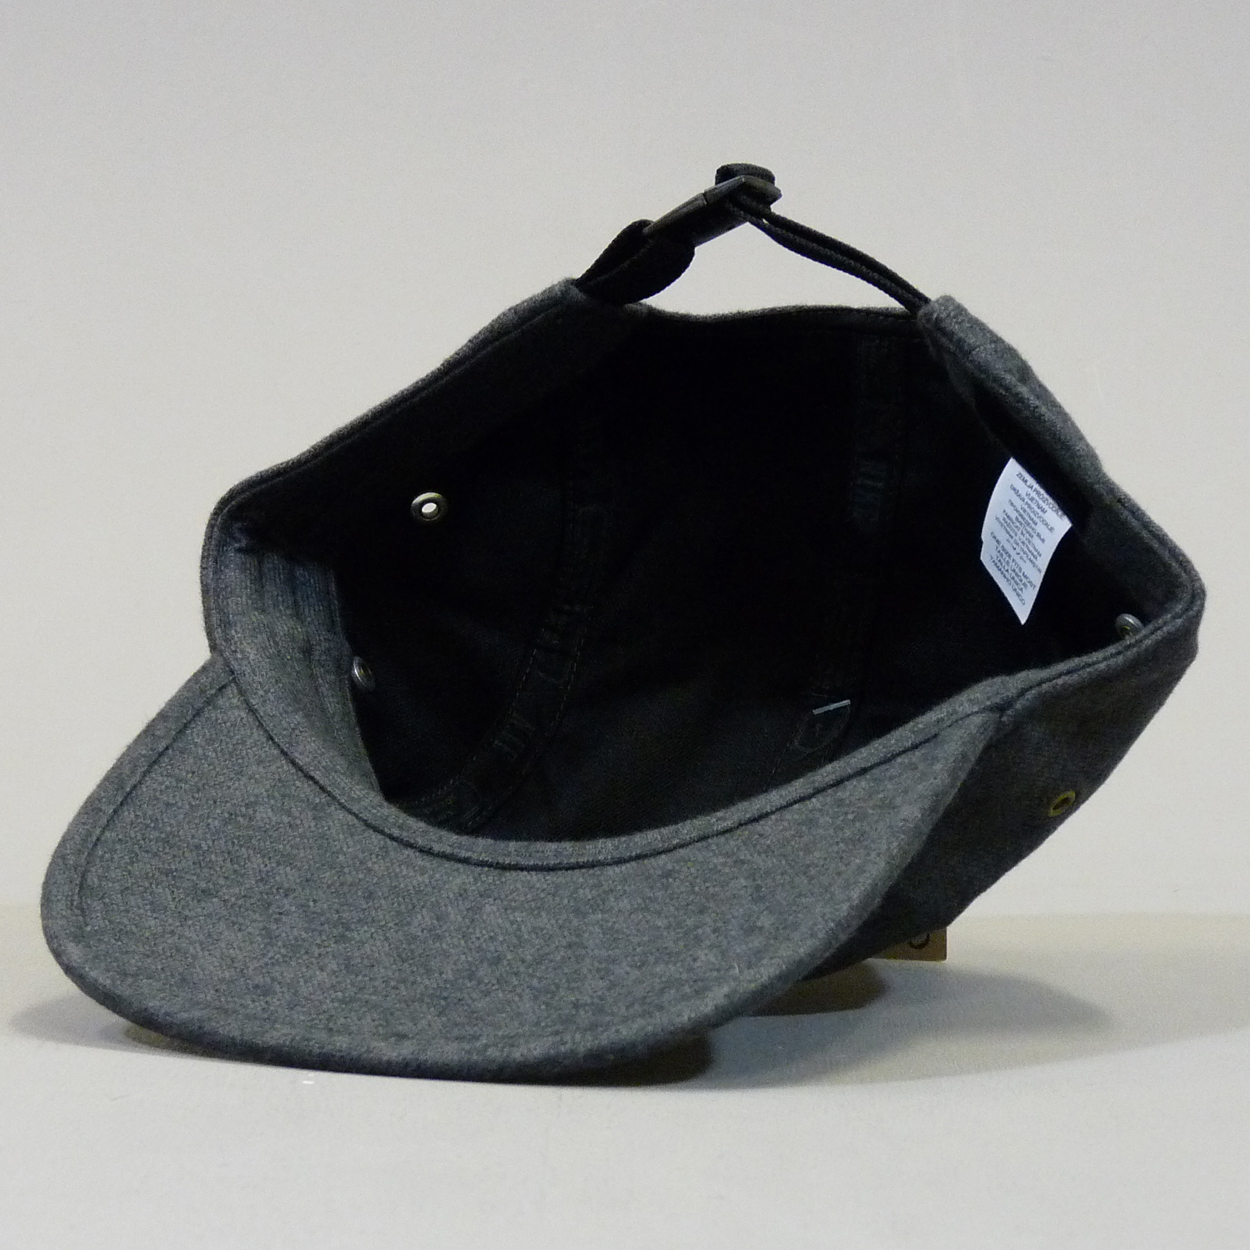 334d3a7f ... essential piece of headwear for a diver but it certainly is for any  deserving Nike SB Fan! I present to you, the Nike Divers Five Panel Cap in Dark  Grey